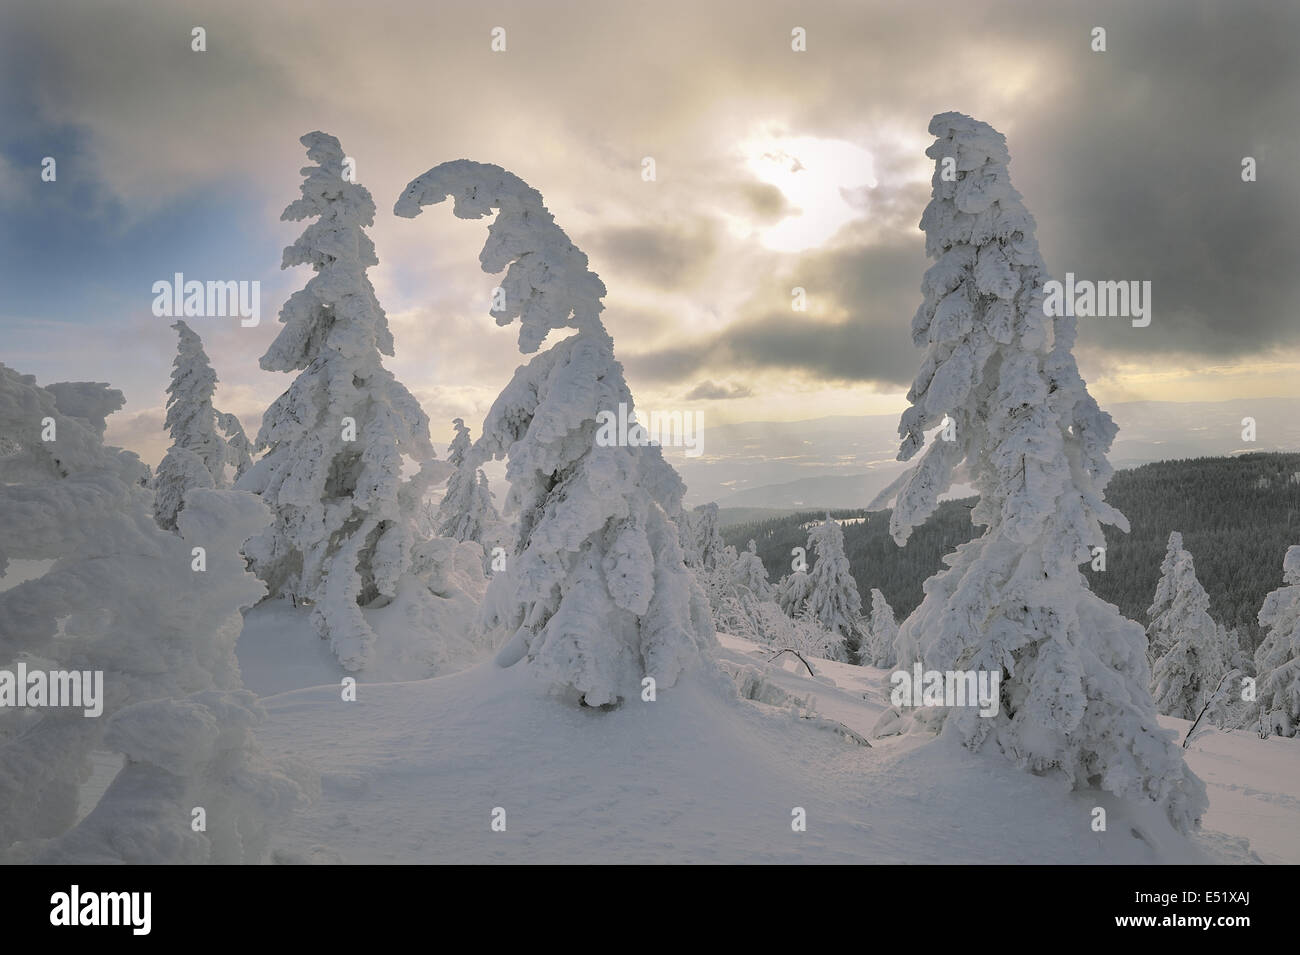 Snowy spruces, Bavaraia, Germany - Stock Image